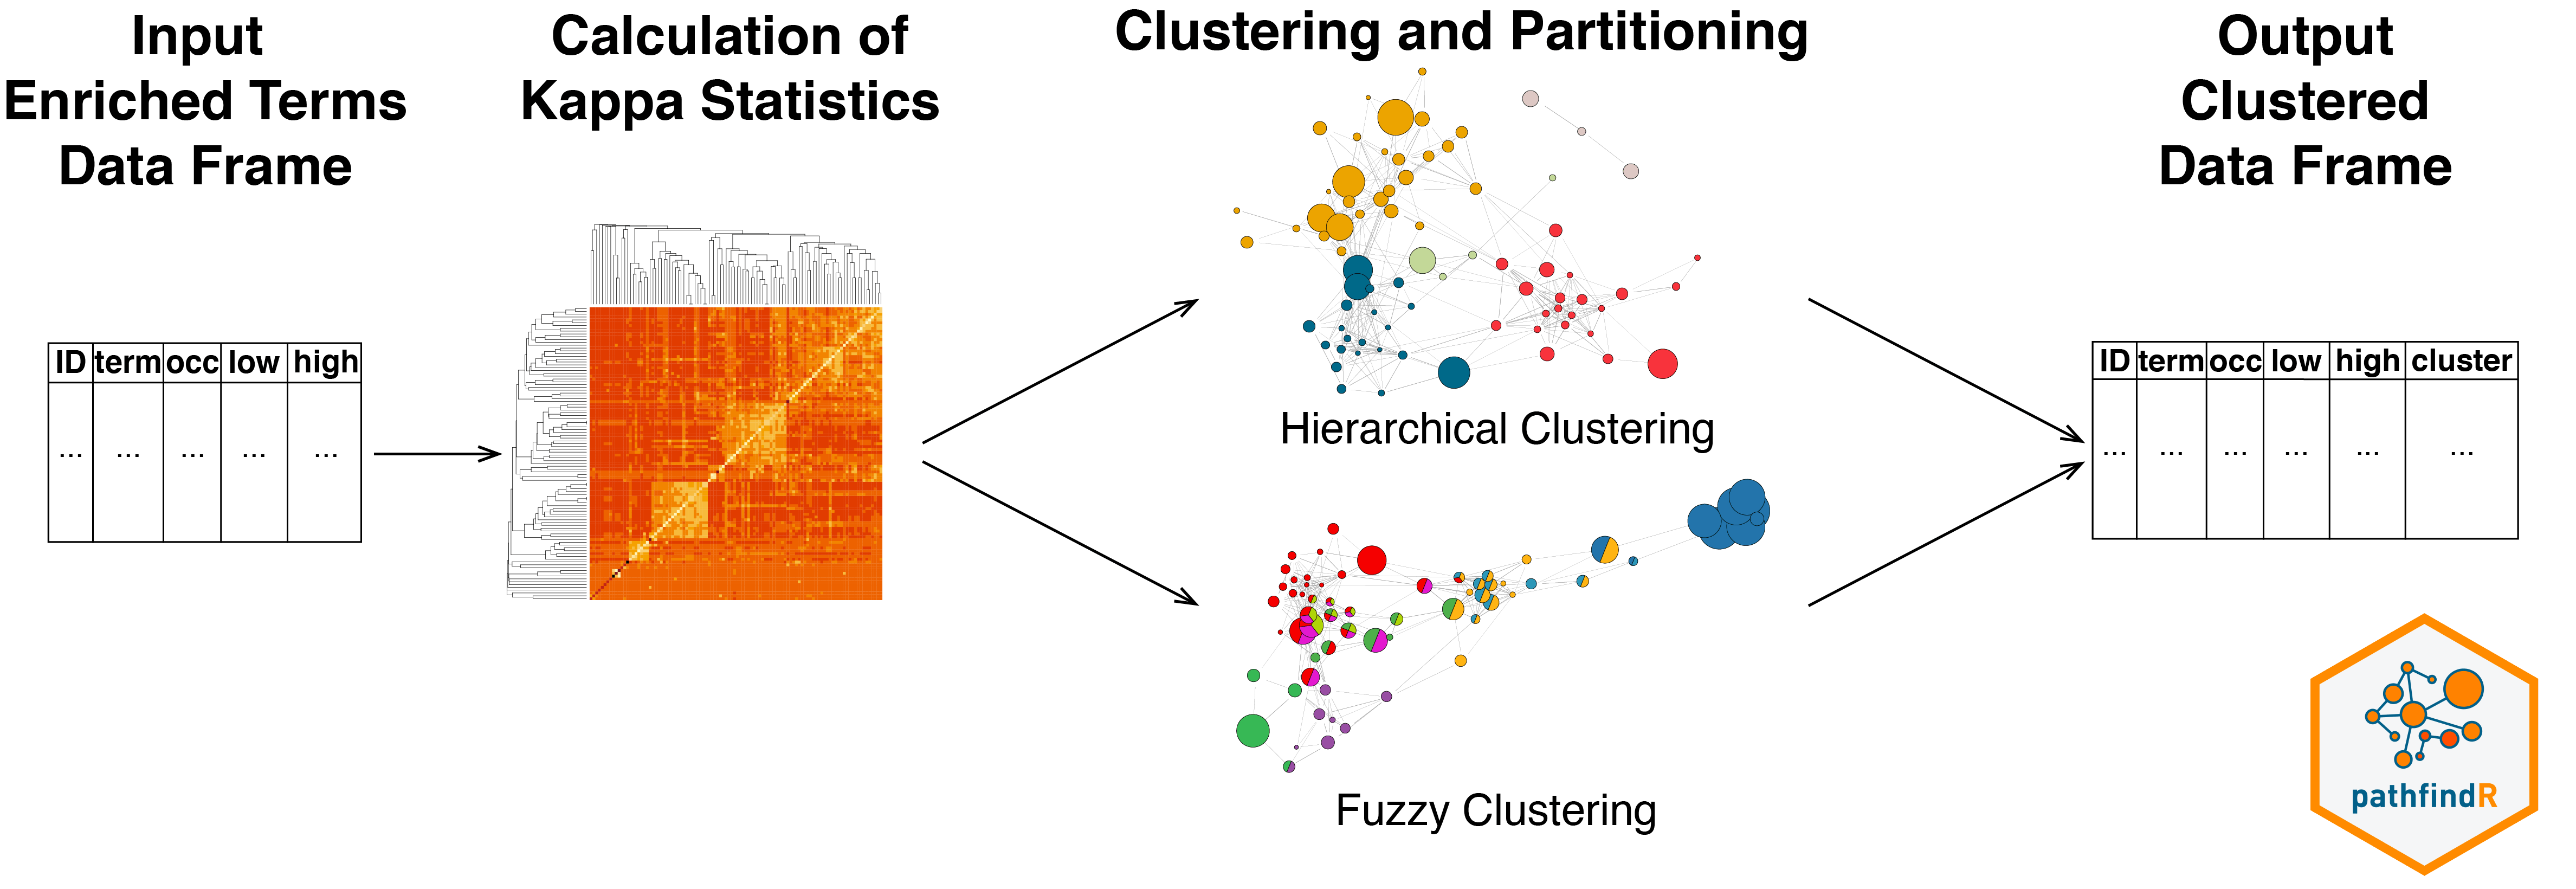 pathfindR clustering overview